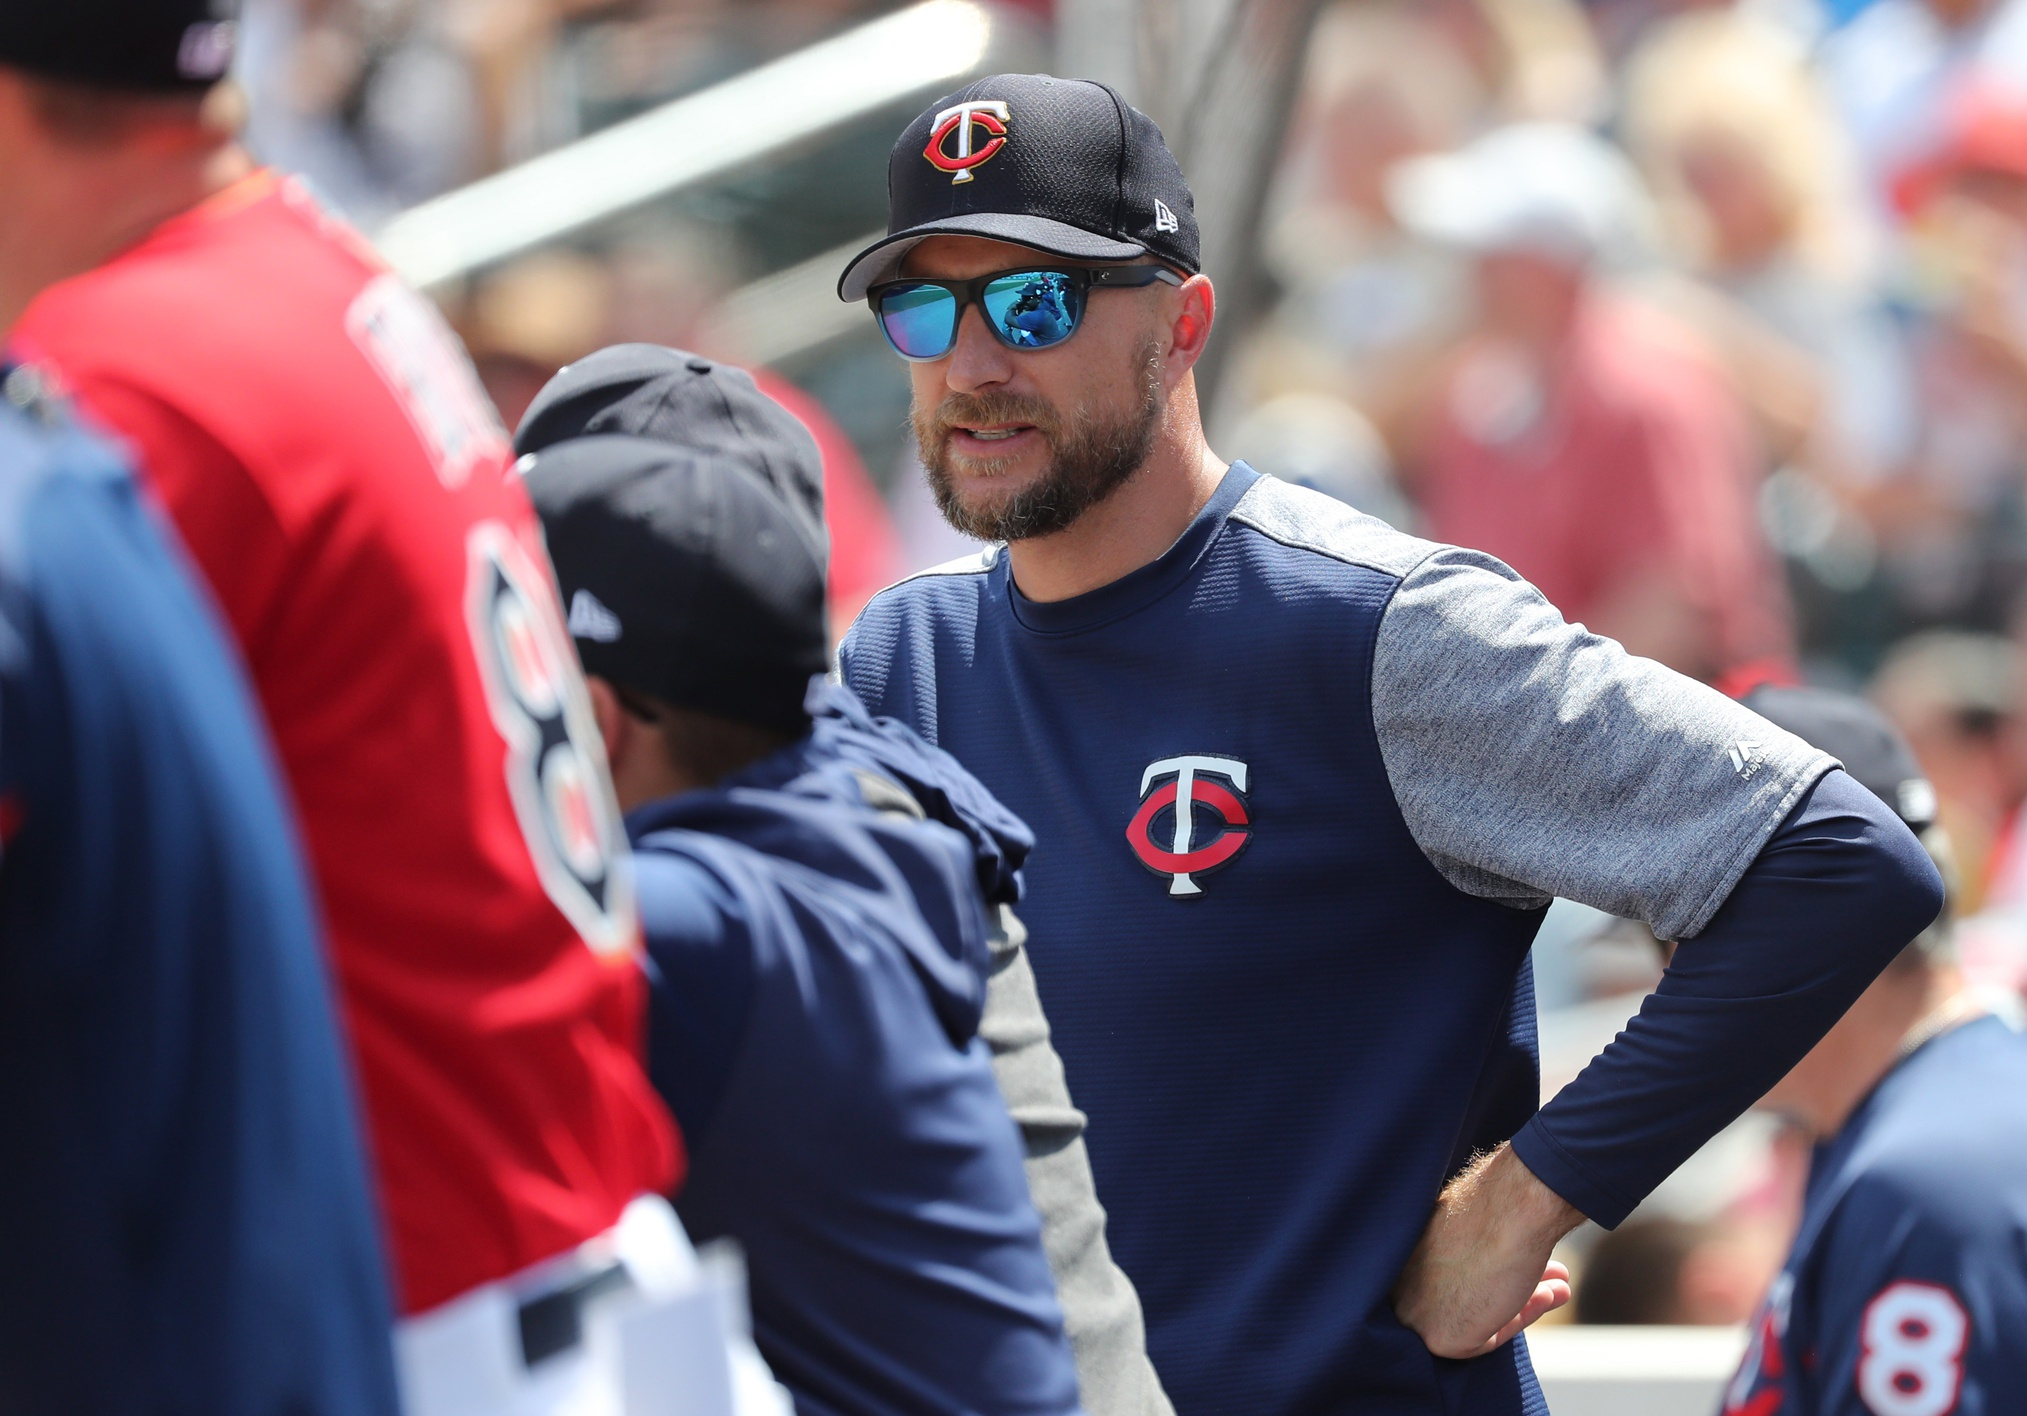 Minnesota Twins 2019 Schedule Analyzing the Twins' 2019 Schedule   Minnesota Twins   Articles